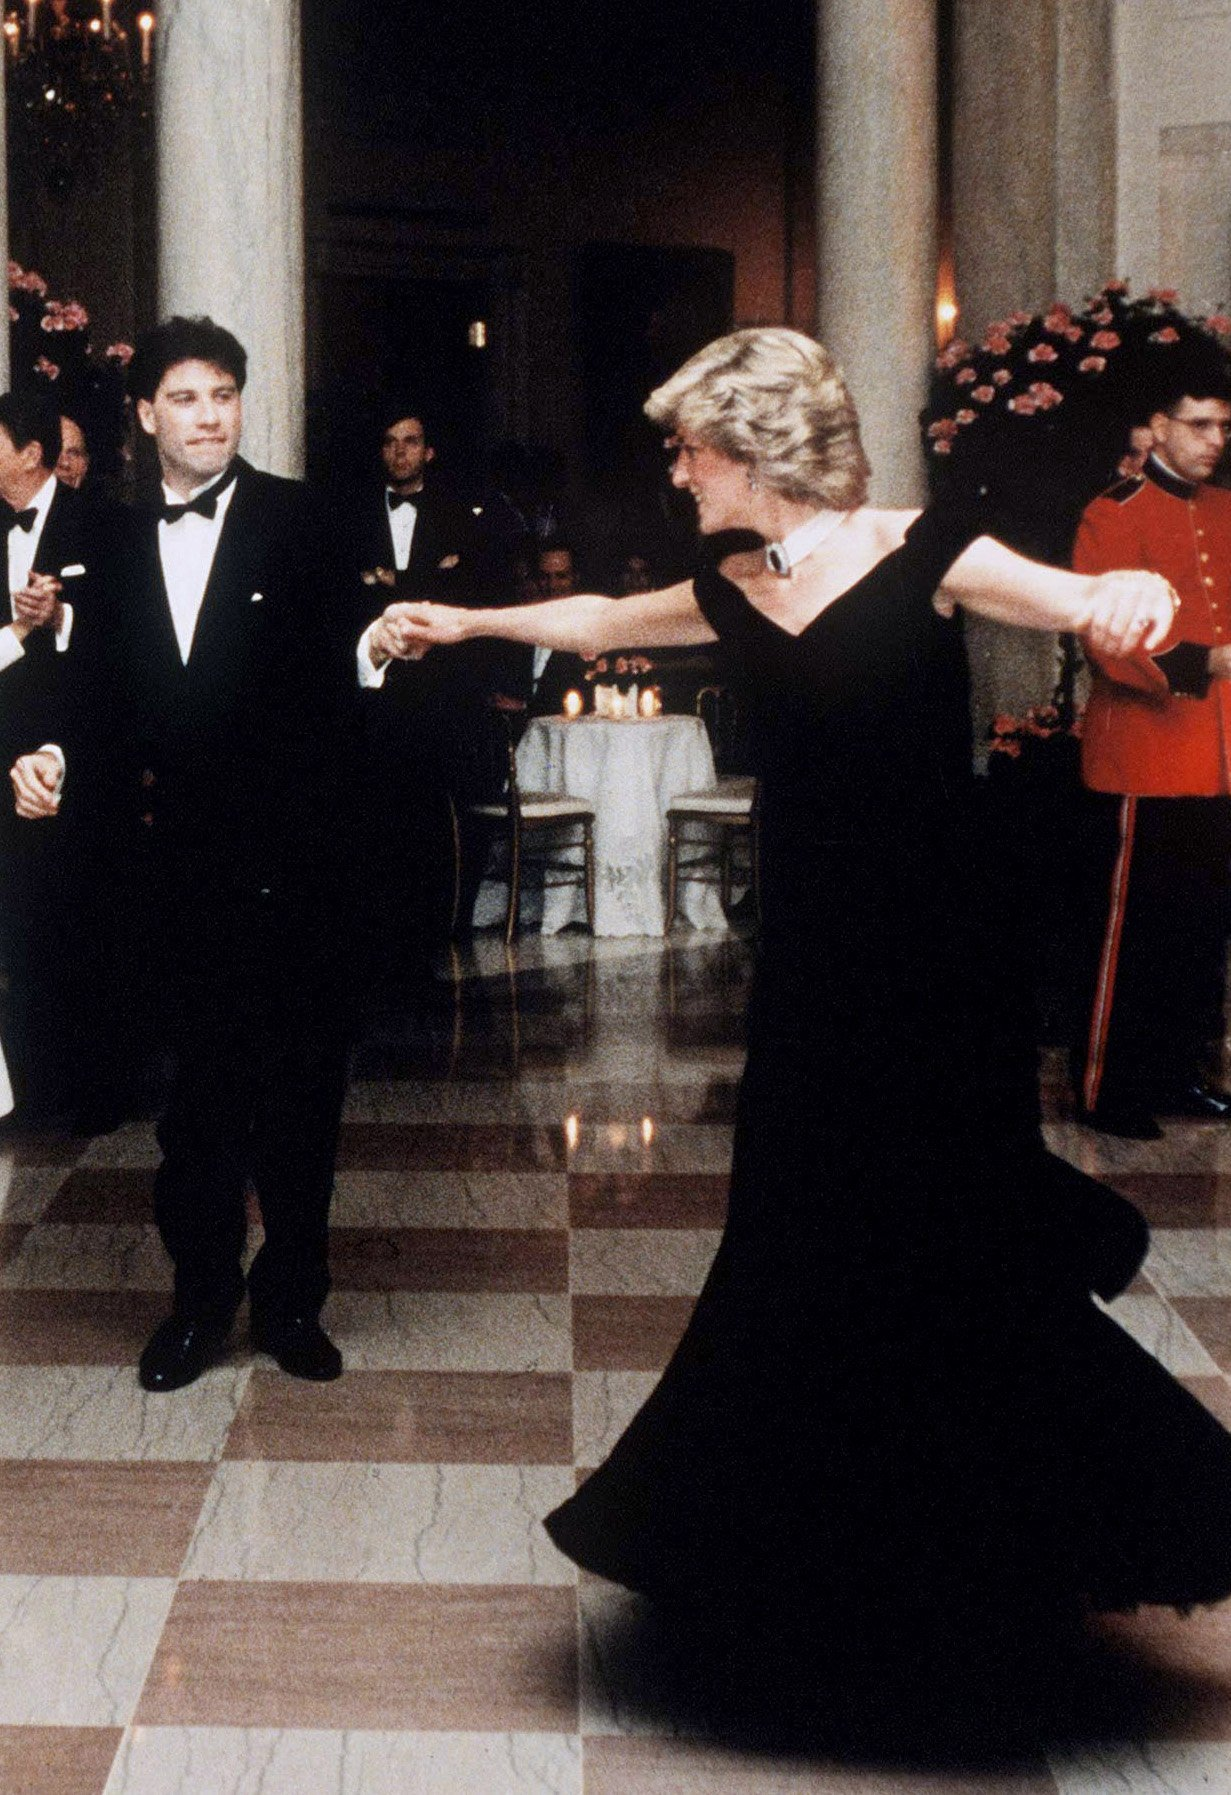 Princess Diana dancing with John Travolta in 1985 | Photo: Getty Images